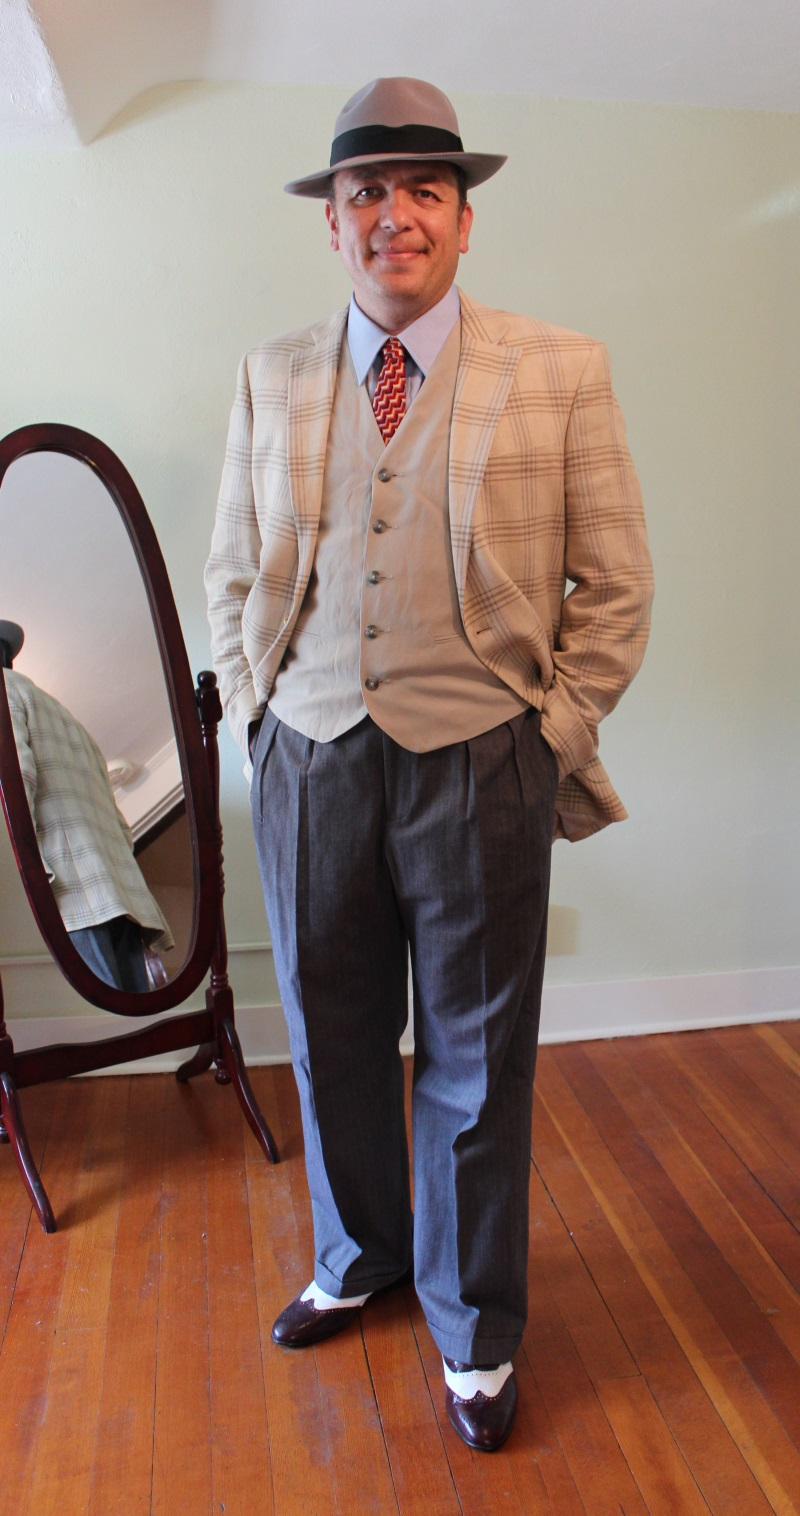 1940s Men's Outfit Inspiration | Costume Ideas